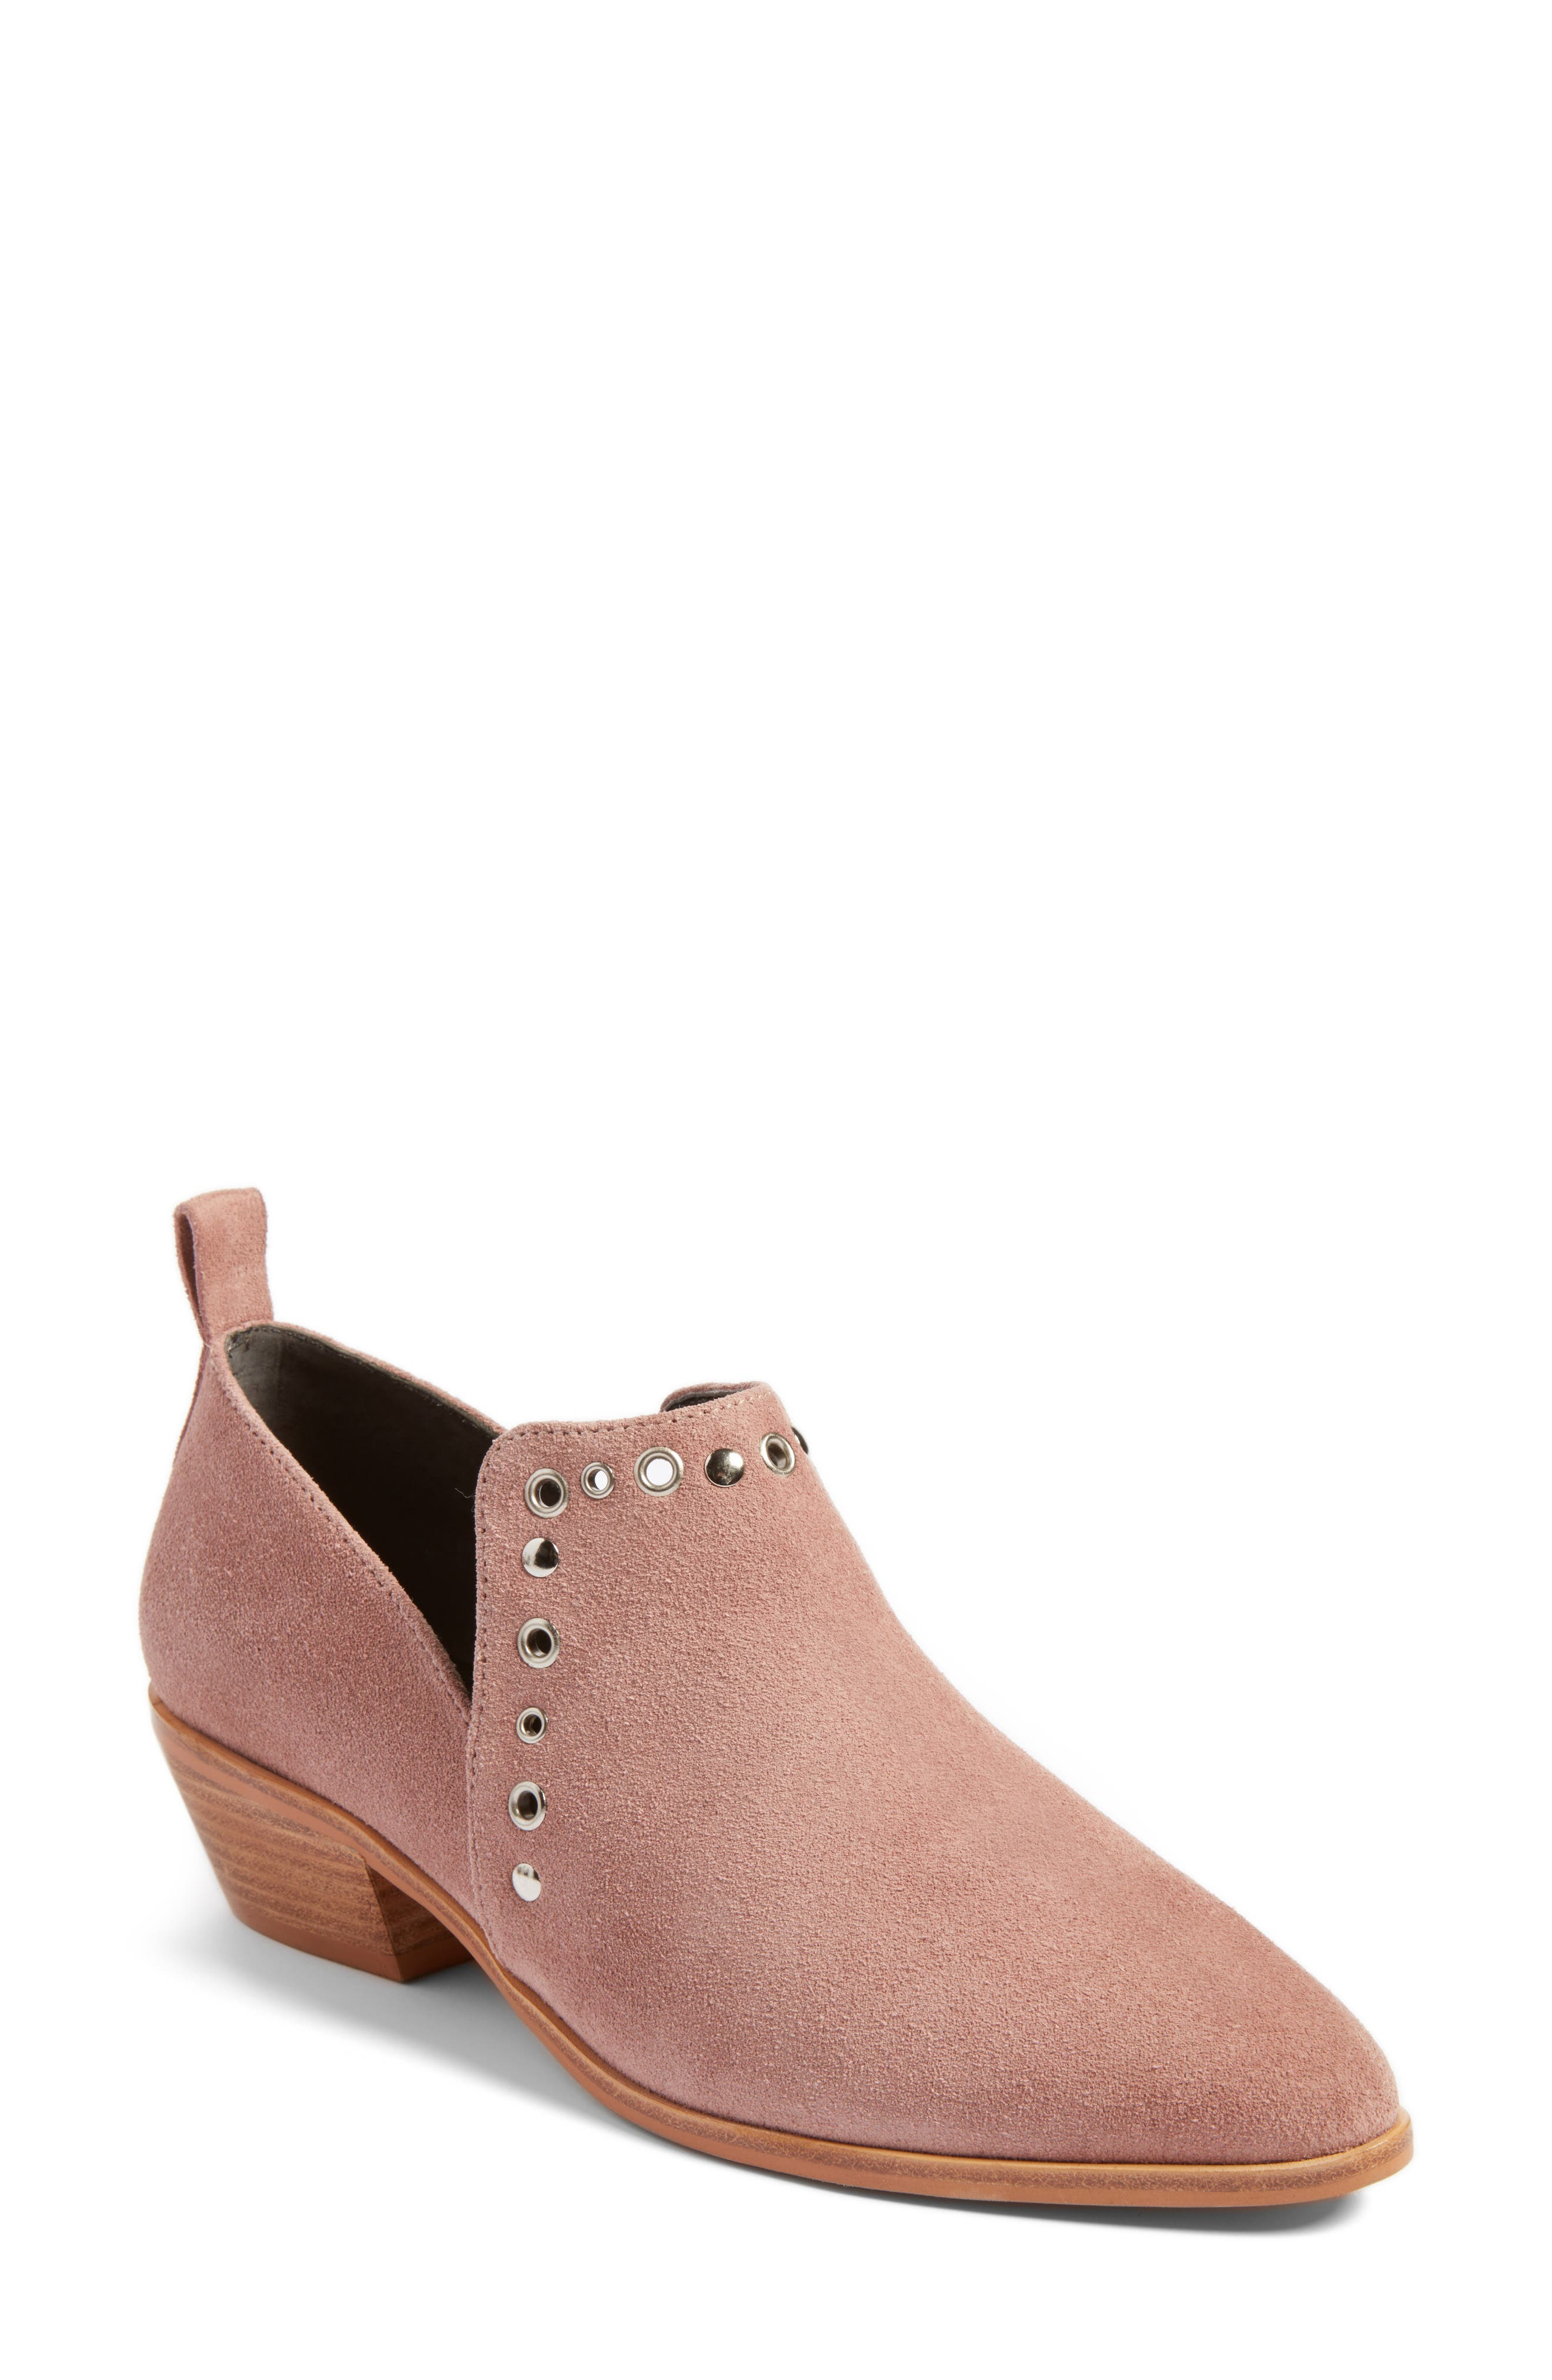 Alternate Image 1 Selected - Rebecca Minkoff Annette Ankle Boot (Women)